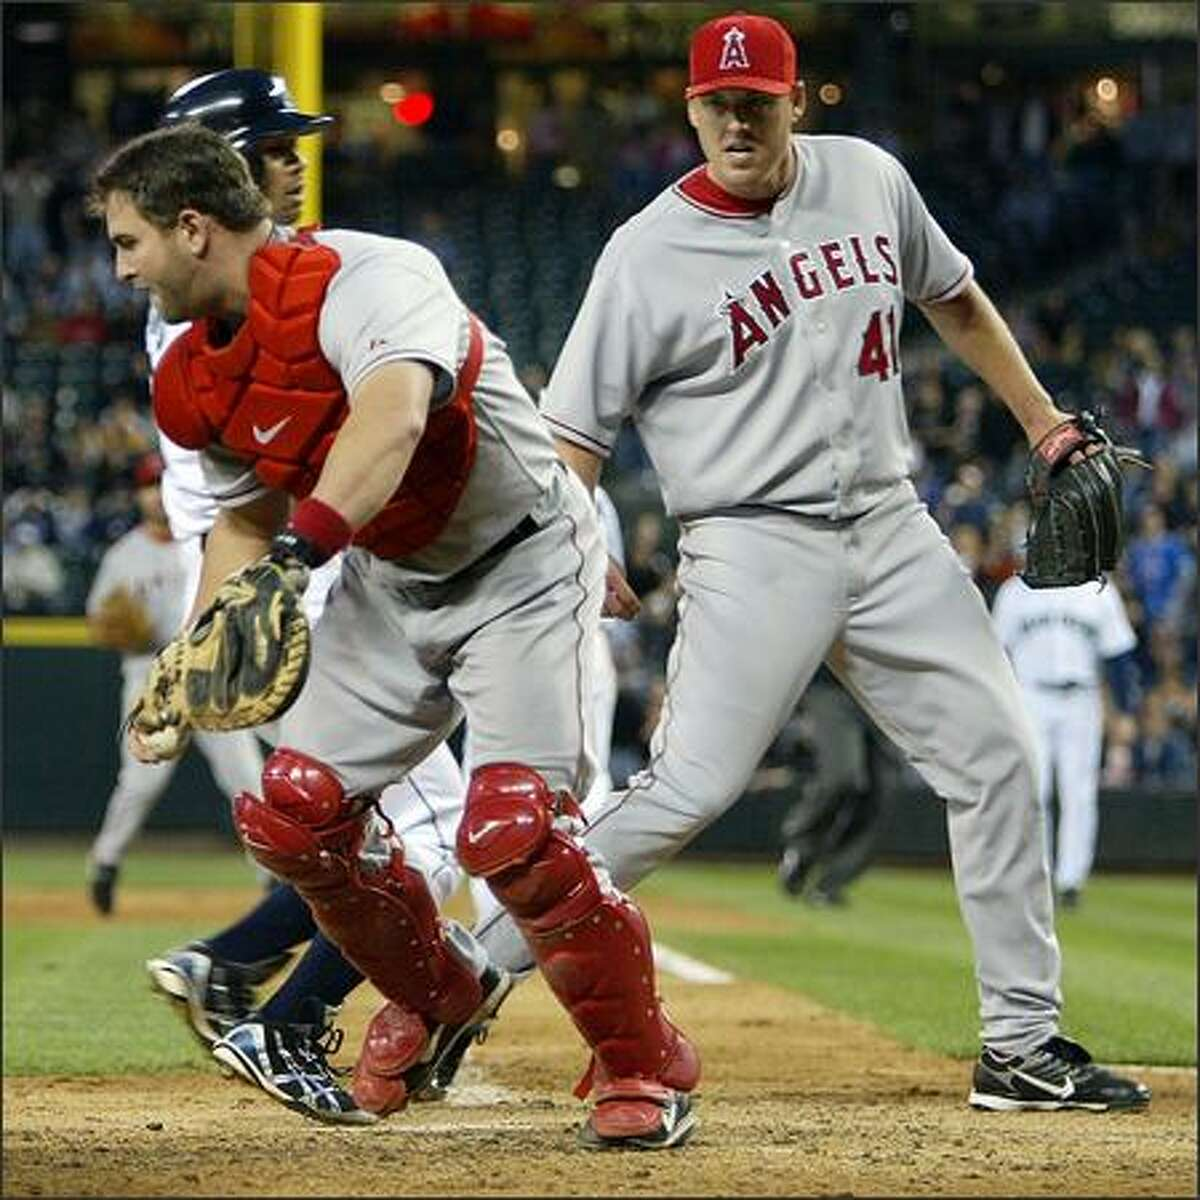 Jose Lopez is forced out at home by Angels catcher Mike Napoli on a bases-loaded fielder's choice by Richie Sexson as pitcher John Lackey backs him up in the sixth inning.